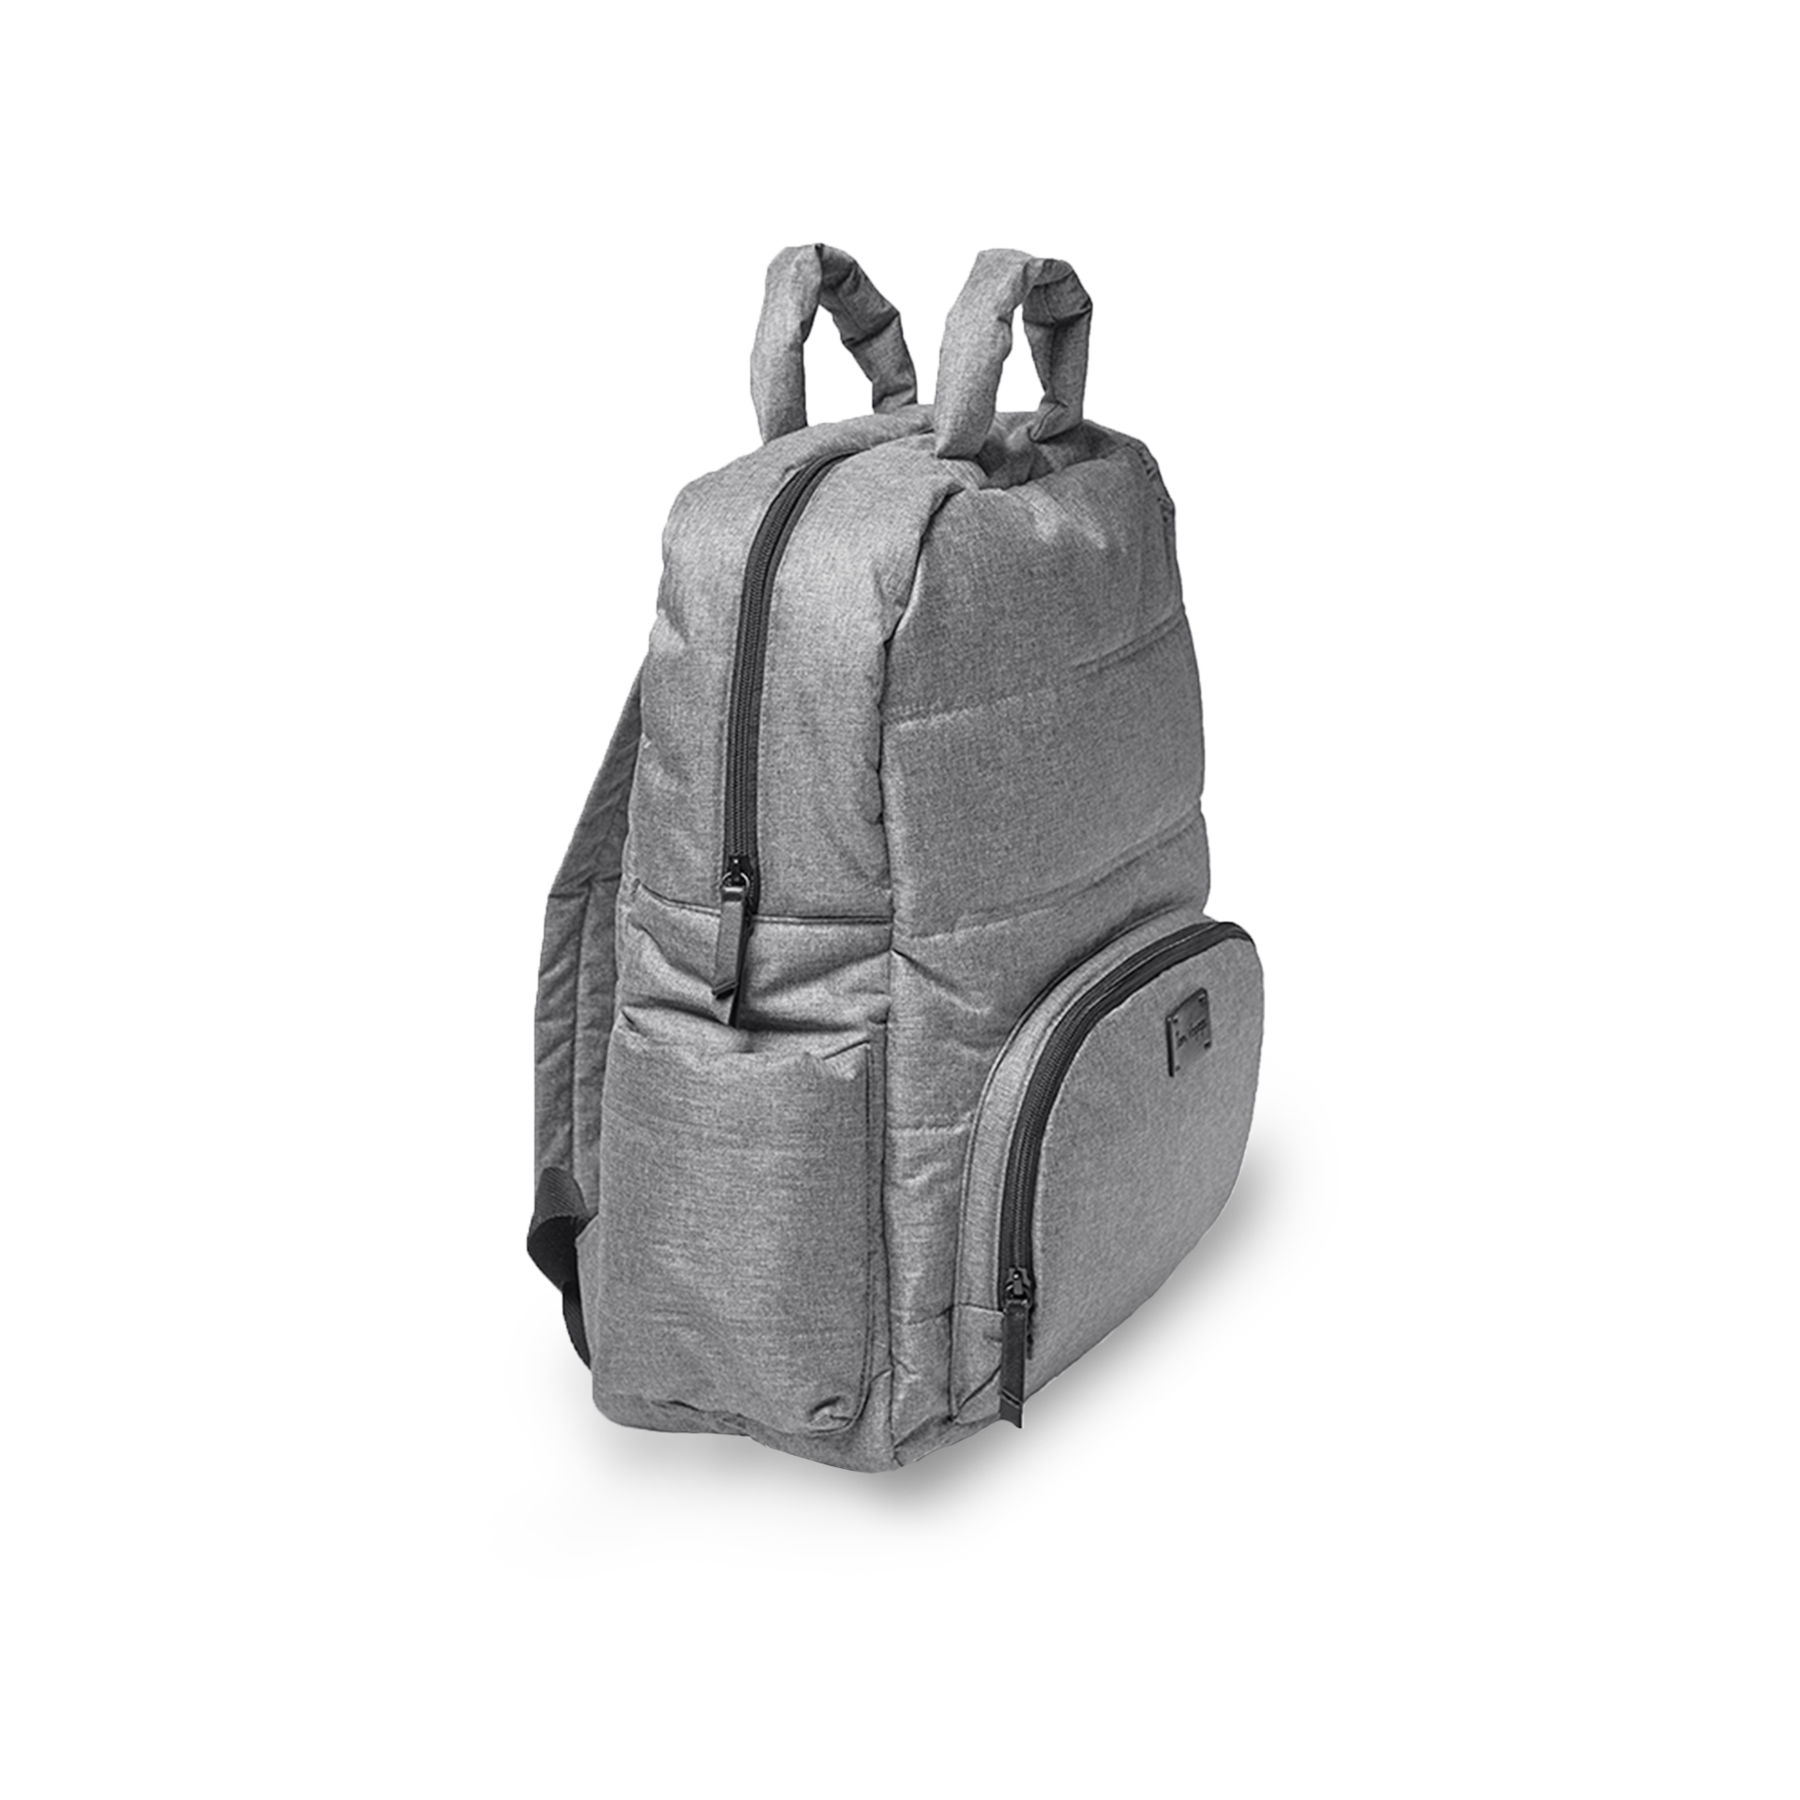 7AM - BK718 BackPack Heather Grey